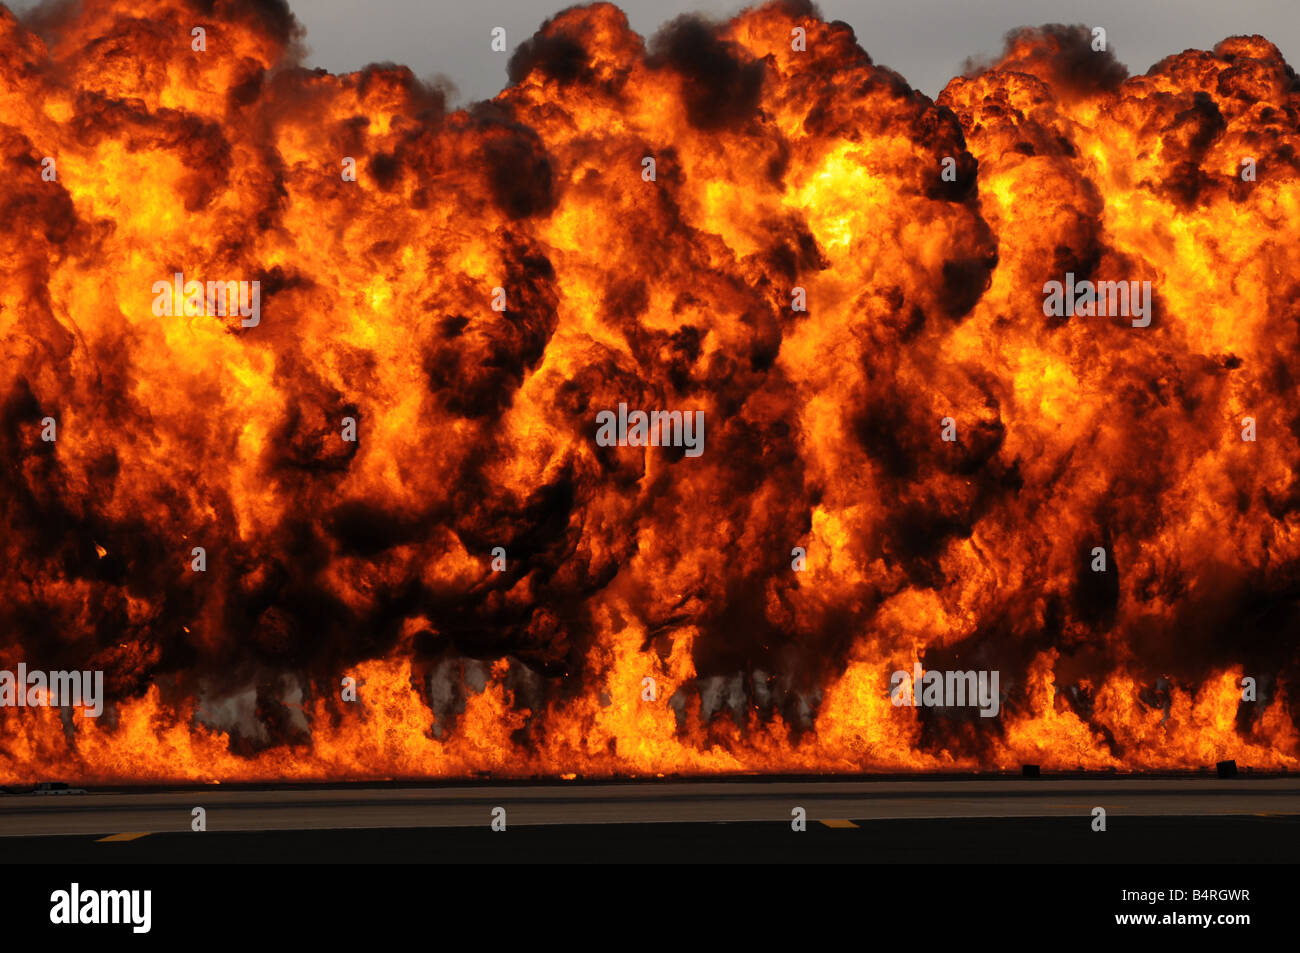 Fiery Explosion - Stock Image